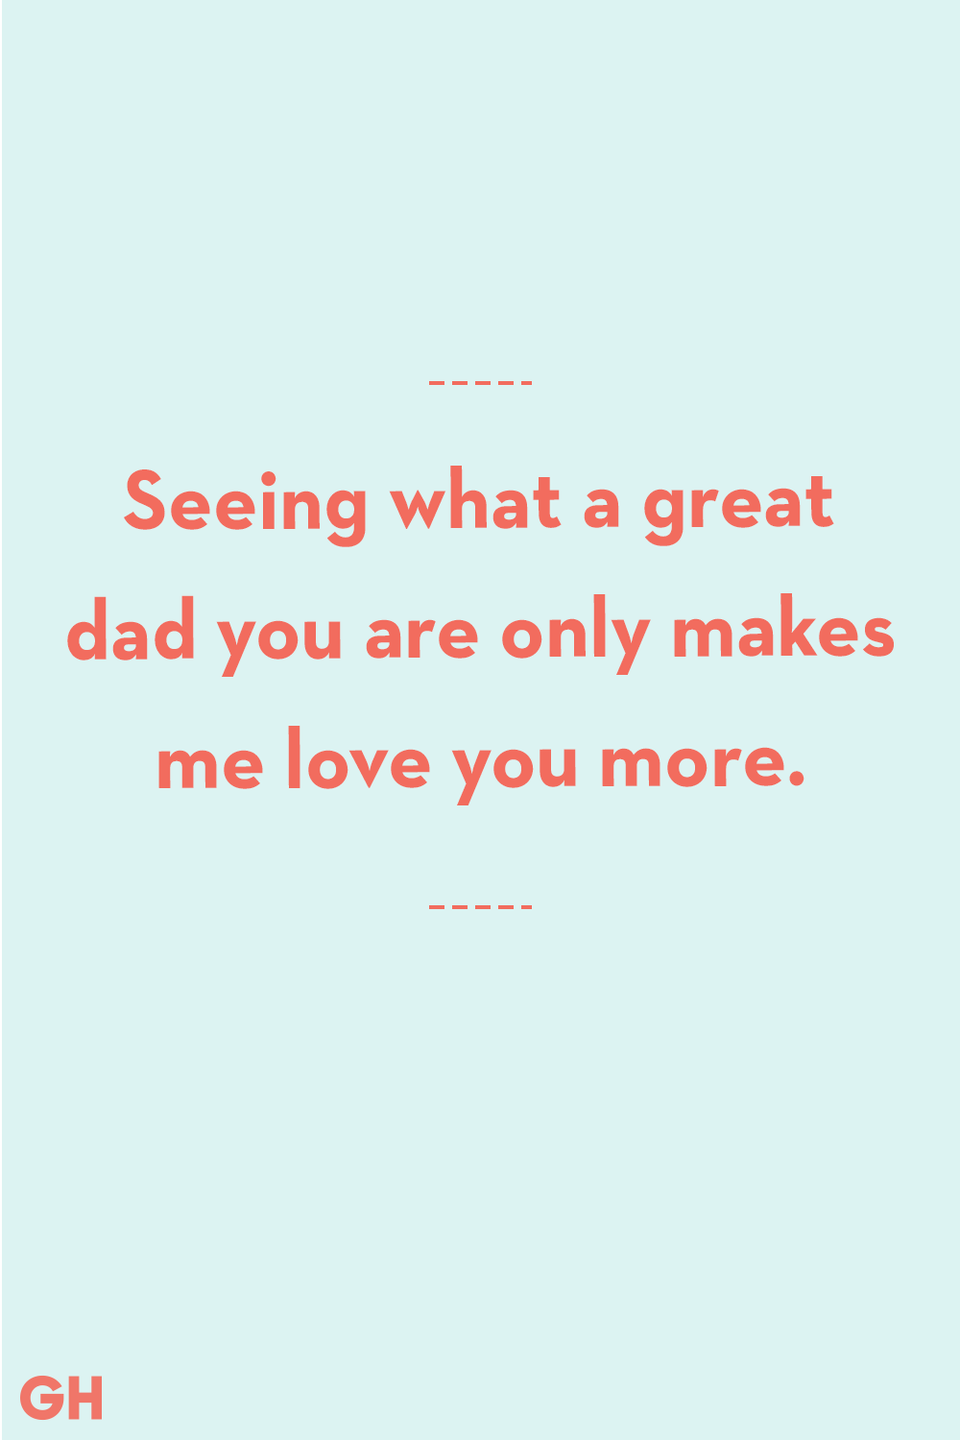 <p>Seeing what a great dad you are only makes me love you more.</p>